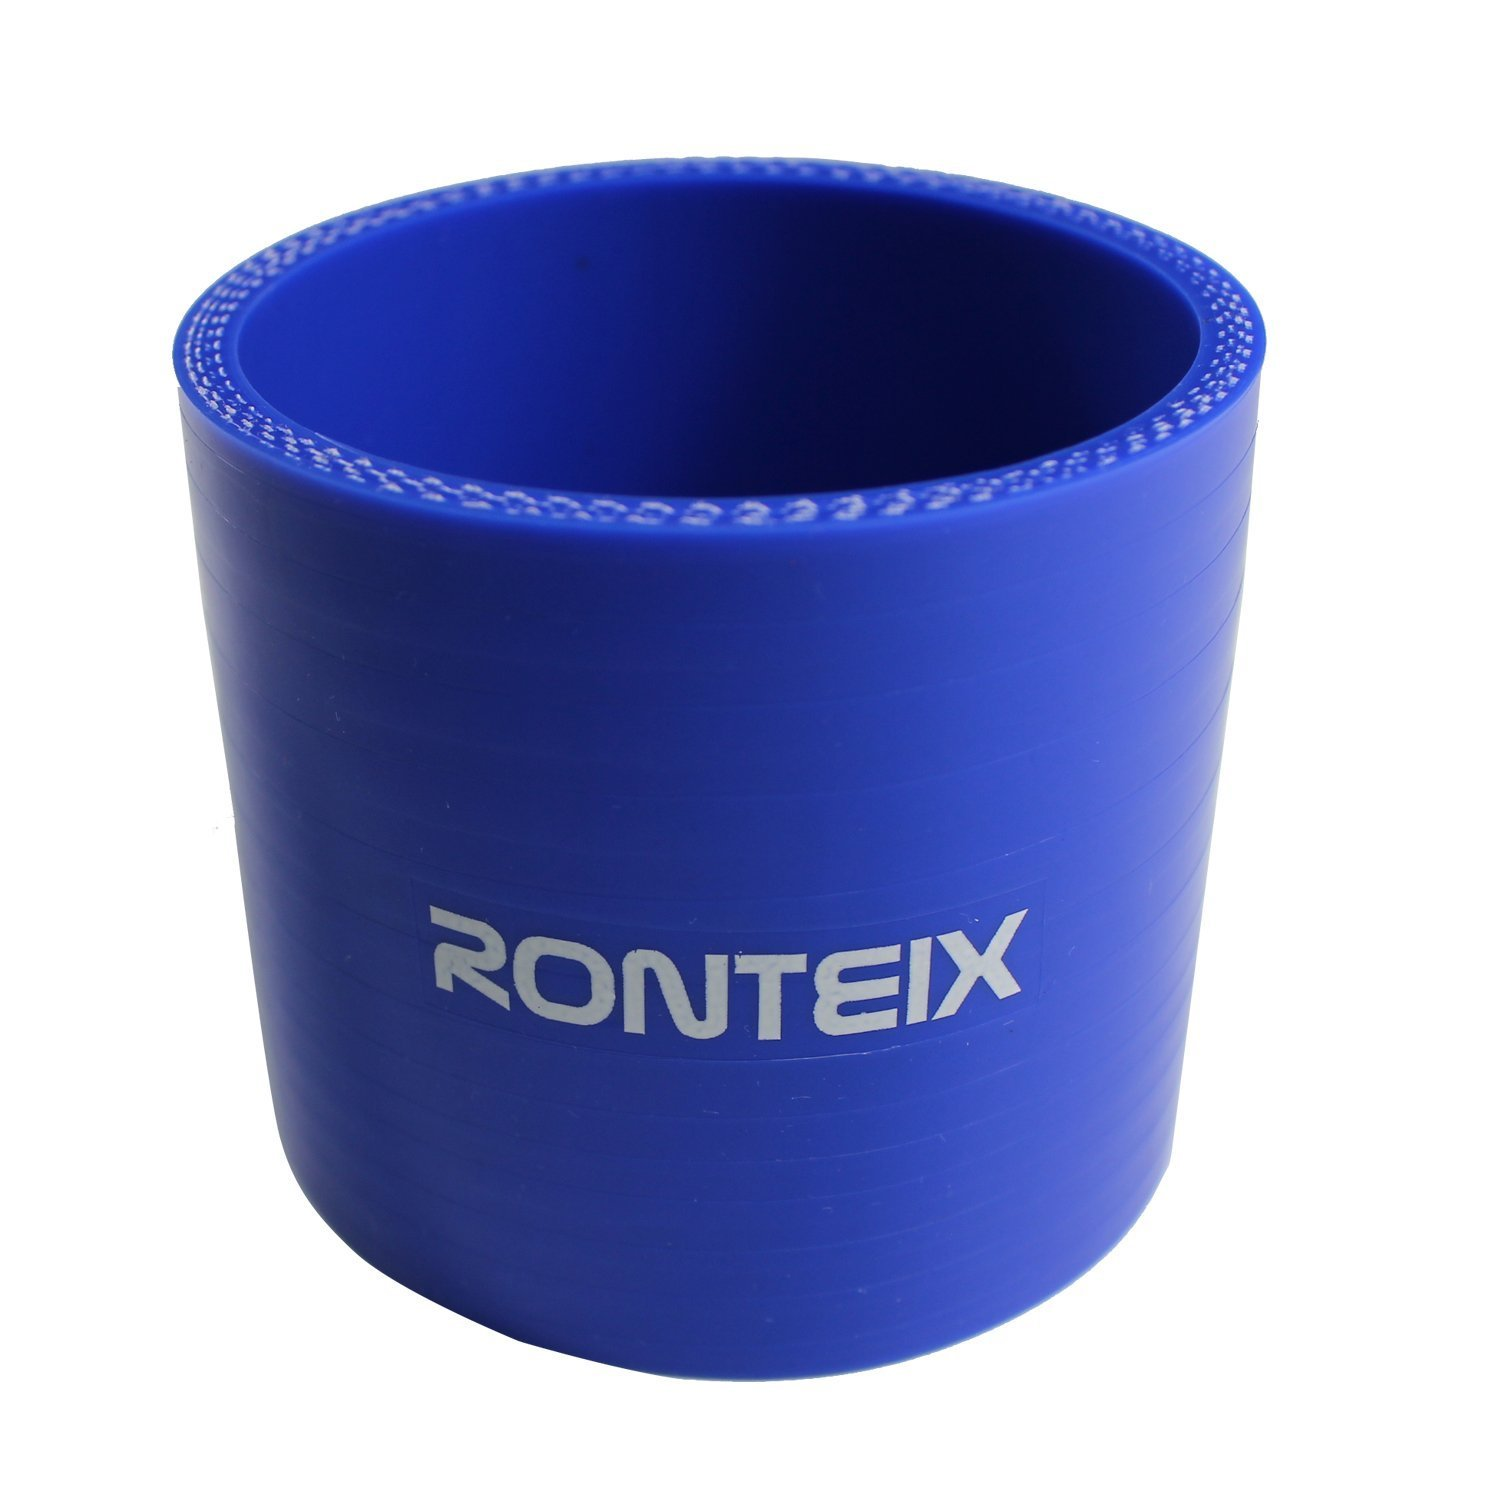 Ronteix 4-Ply Straight Coupler Silicone Hose Reinforced 76mm Length (3''(76MM), BLUE) Wuhan Jackwin Industrial Co. ltd.